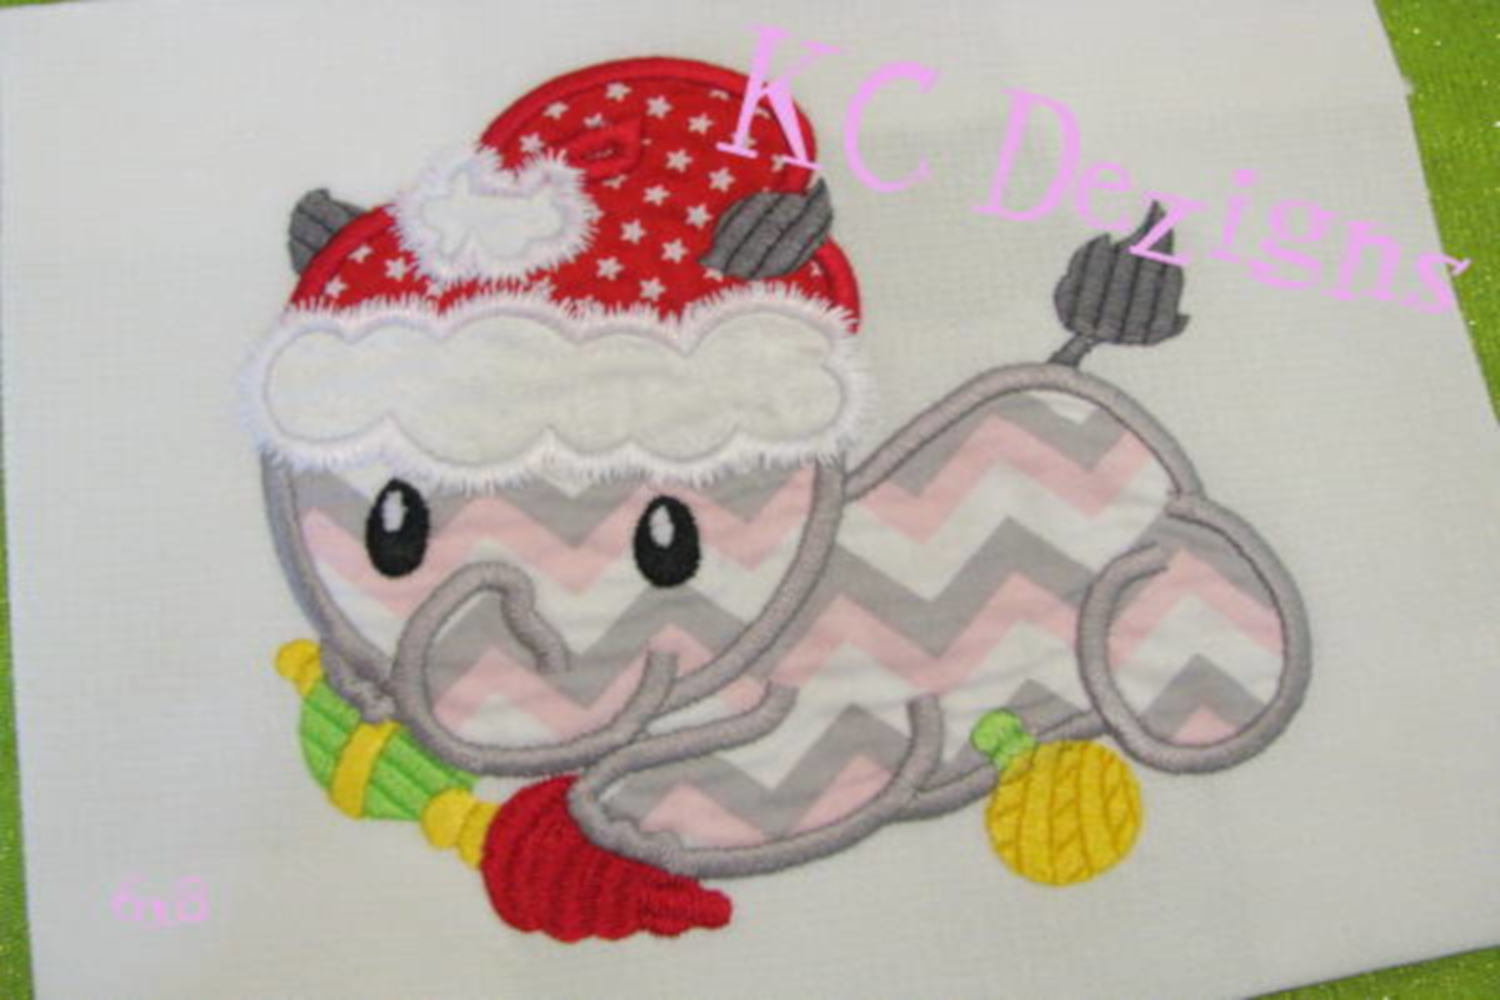 Christmas Baby Rhino Machine Applique Embroidery Design example image 2